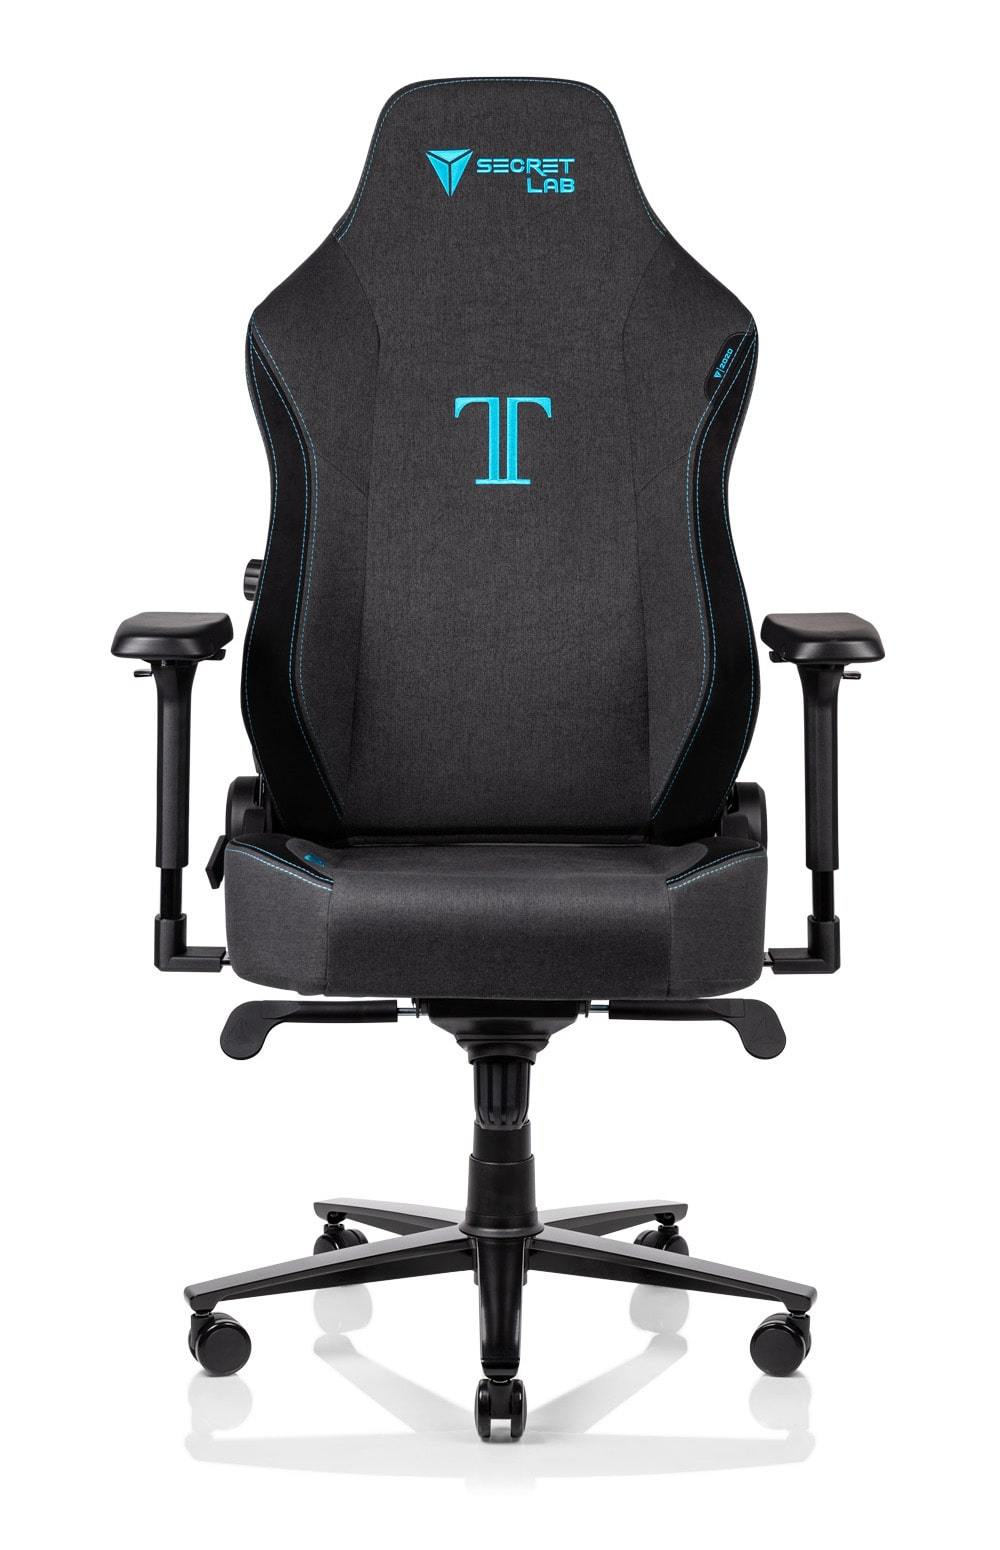 Titan Gaming chair